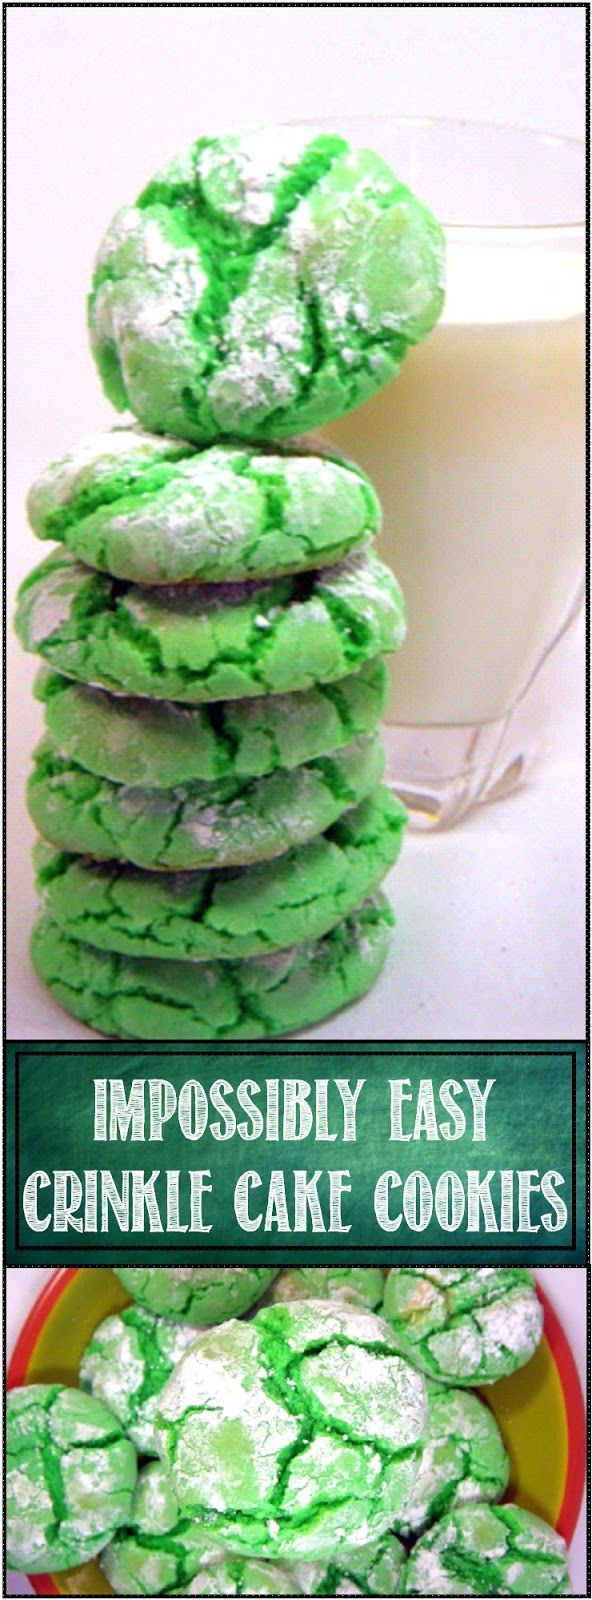 IMPOSSIBLY EASY Crinkle Cake Cookies - Minty Green for St Paddy's Day... Like it says, soooooo easy. Perfect to make with kids. Uses a store bought cake mix. Ready from opening the box to eating a hot PRETTY cookie in 20 minutes. Soft, Chewy and a GREAT presentation look!